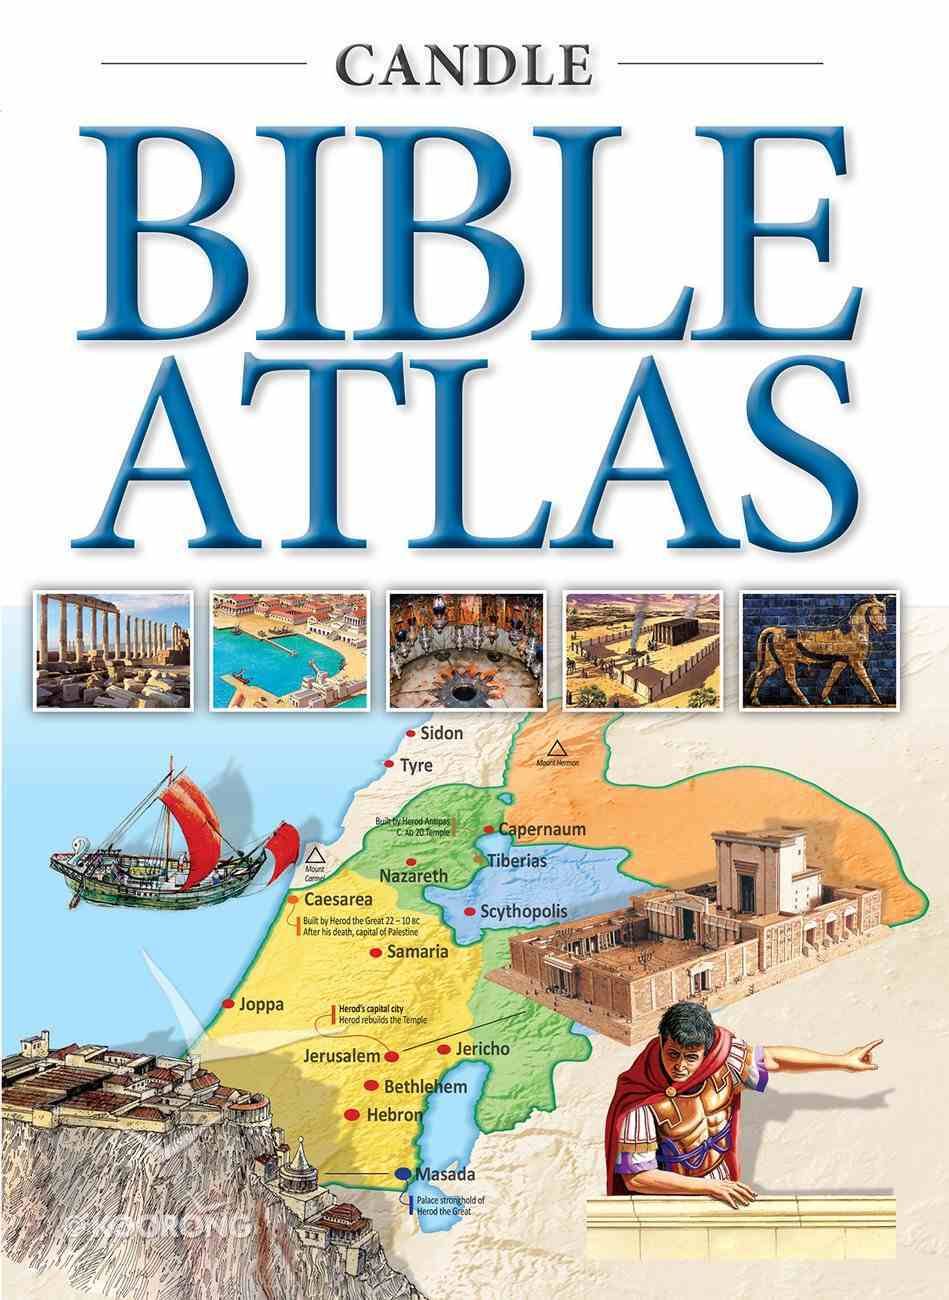 Bible Atlas (Candle Classic Series) Paperback